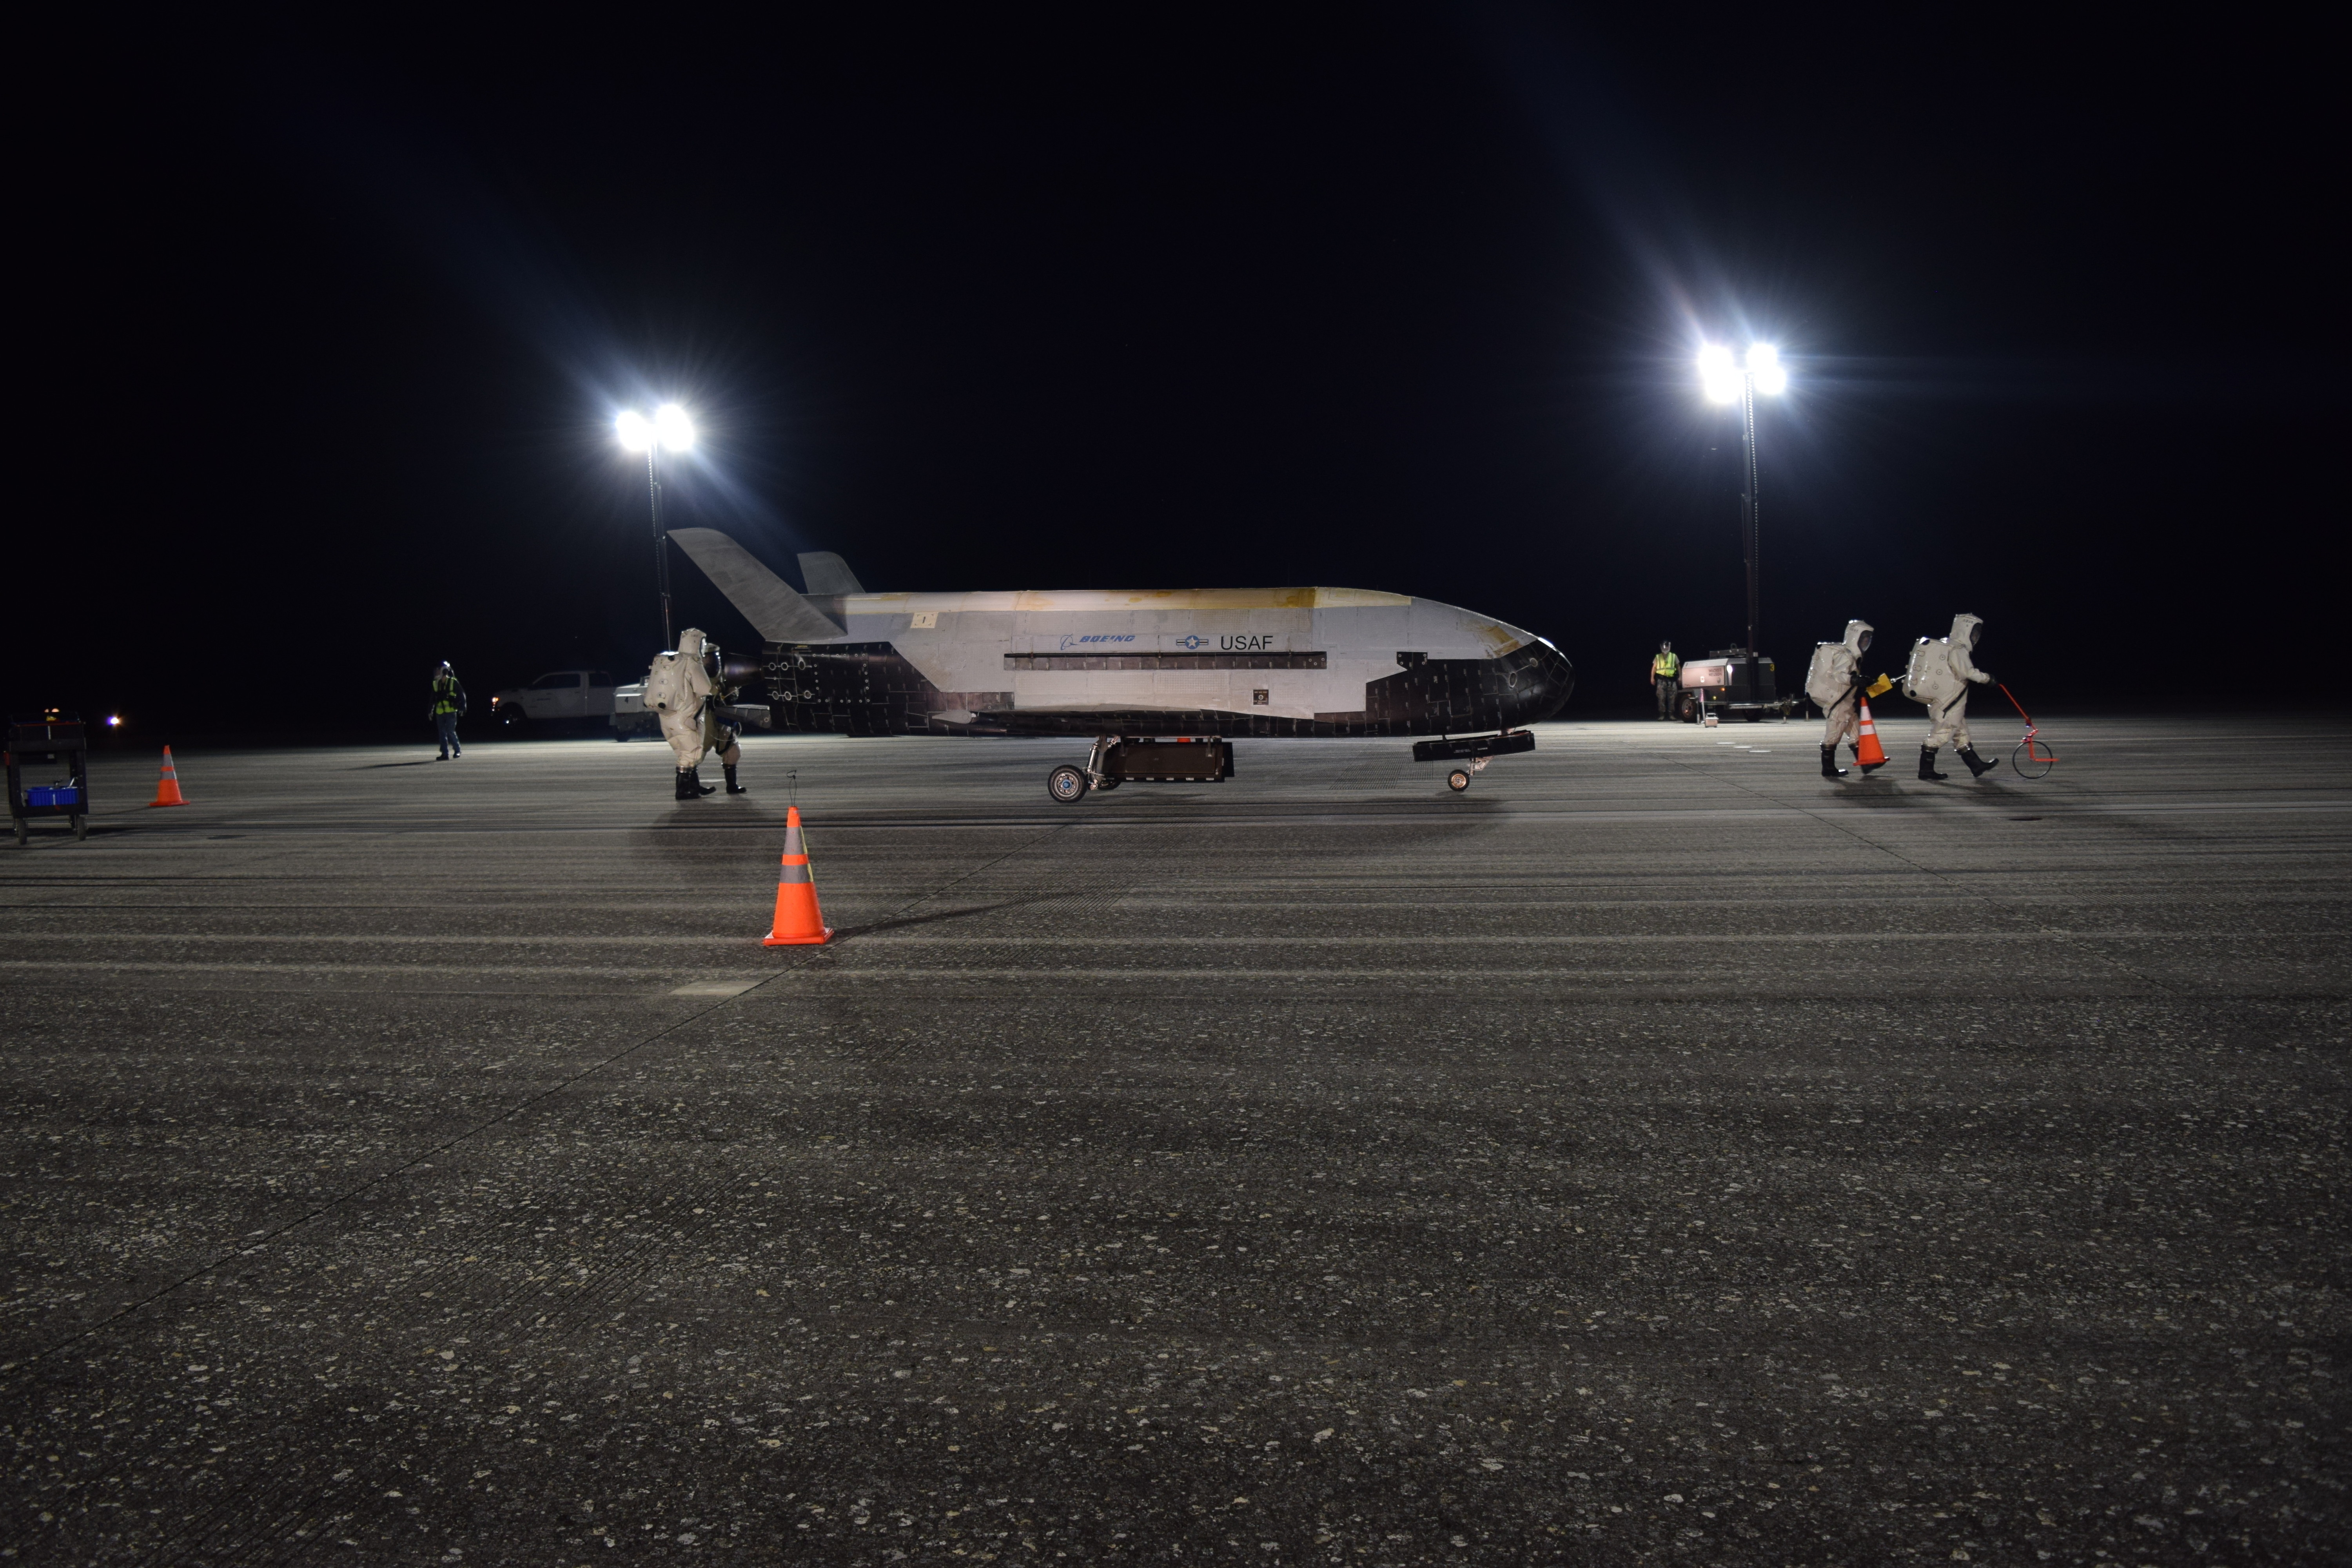 US Space Force Reveals Some X-37B Details